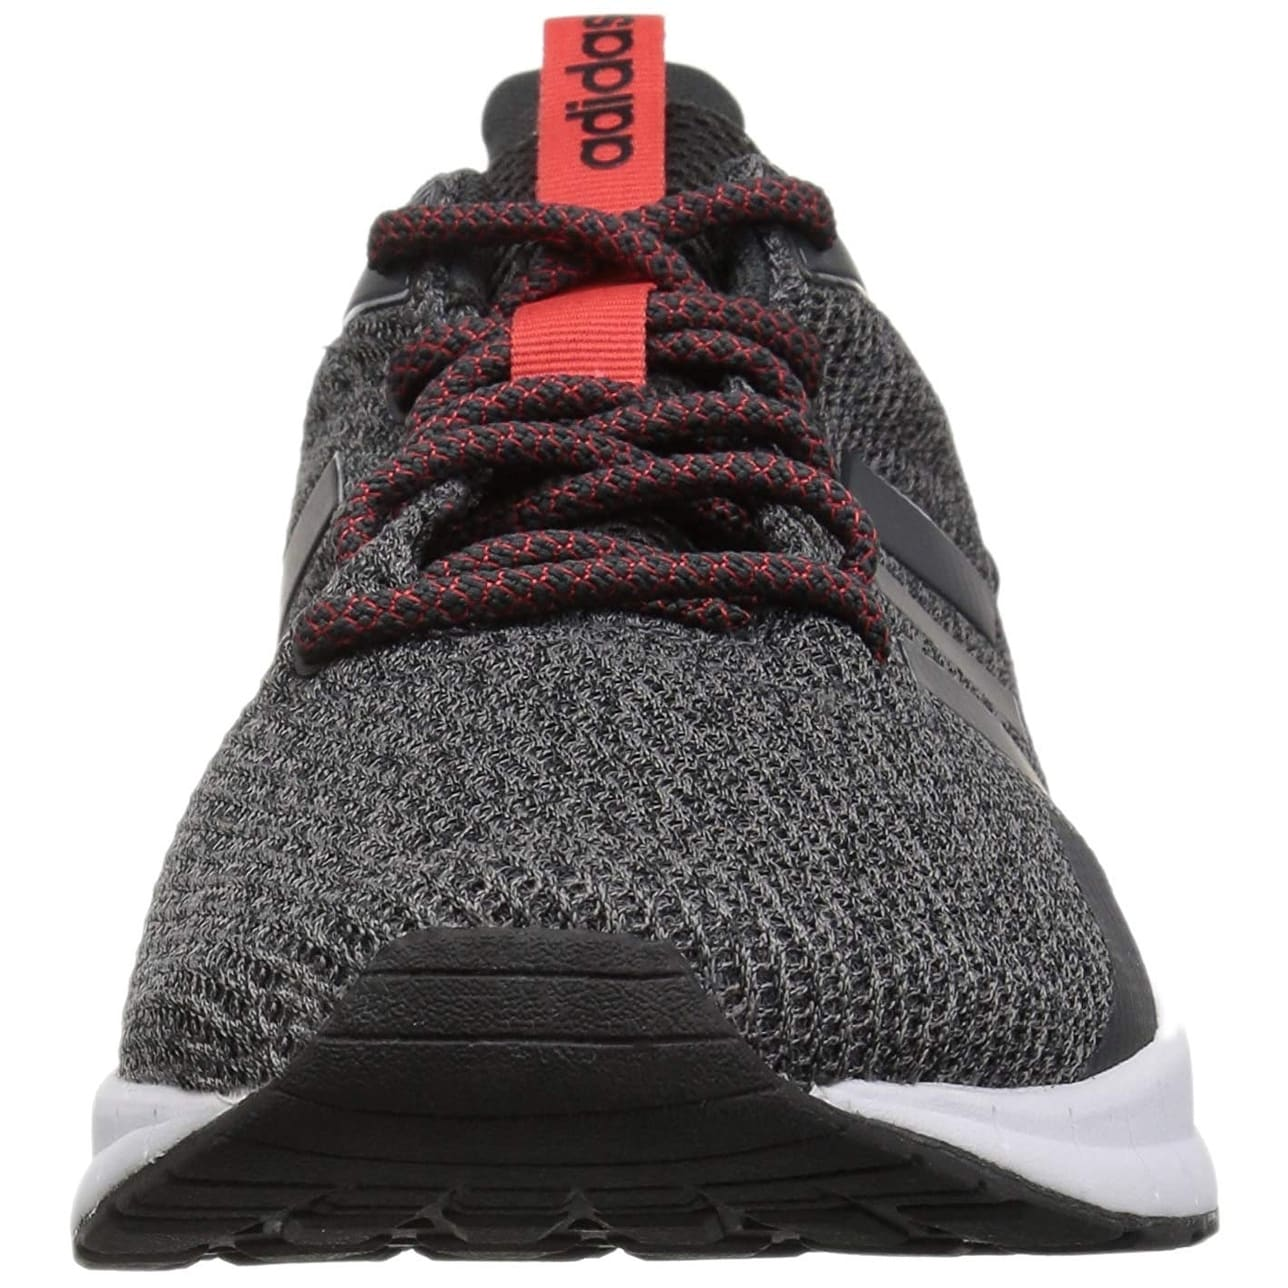 super popular f0415 65a8b Shop Adidas Mens Questar Ride Running Shoe CarbonBlack, 13 M Us - Free  Shipping Today - Overstock - 25367388